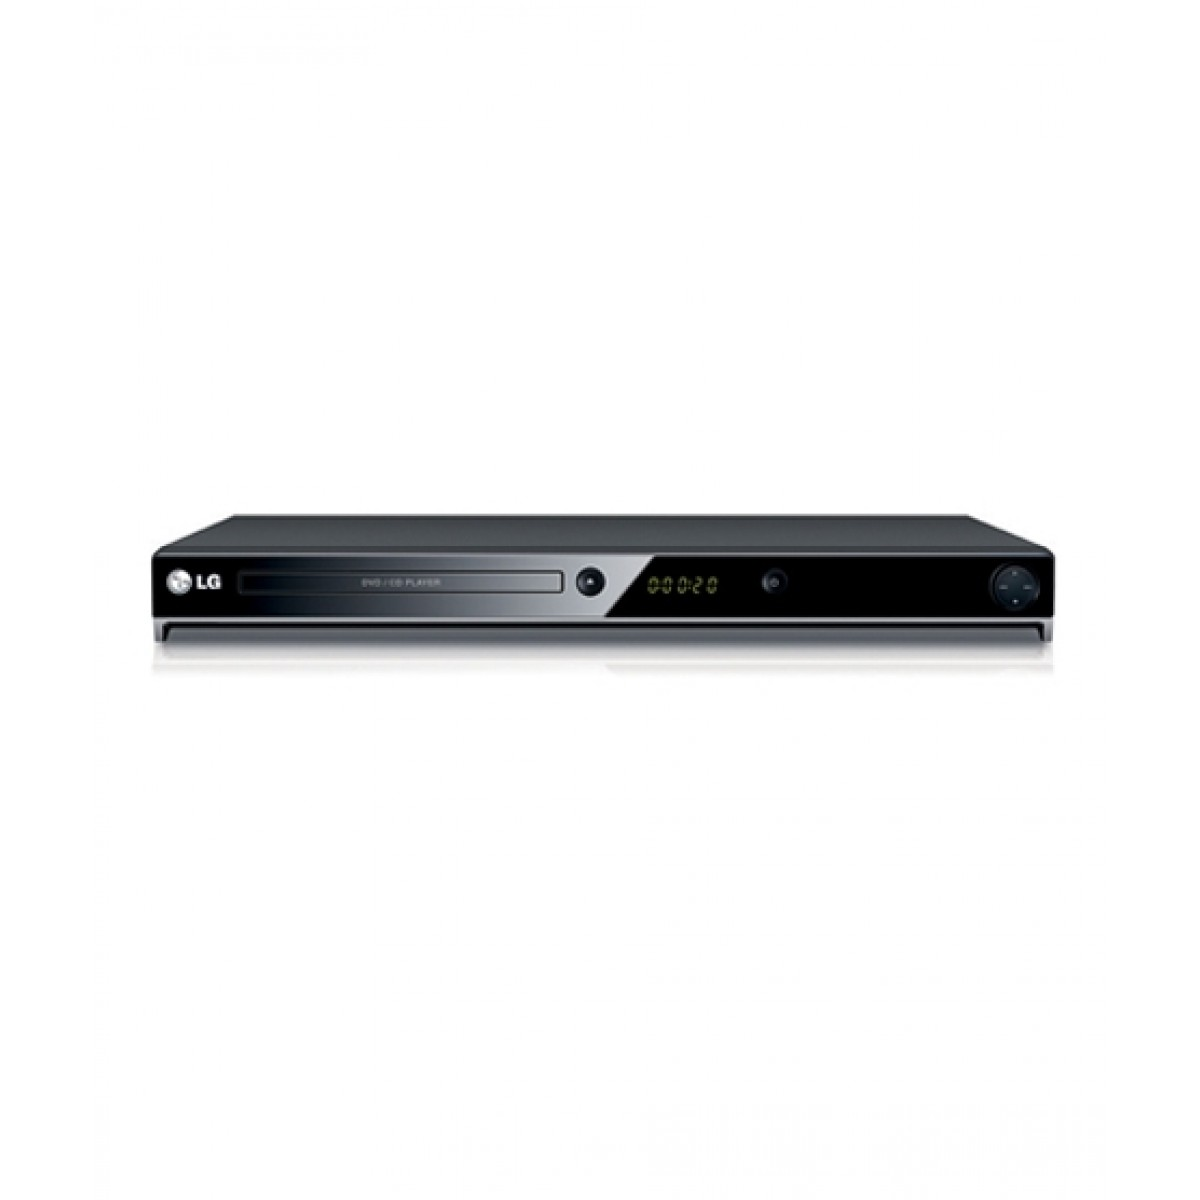 LG Slim Multi Format DVD Player (DV550)